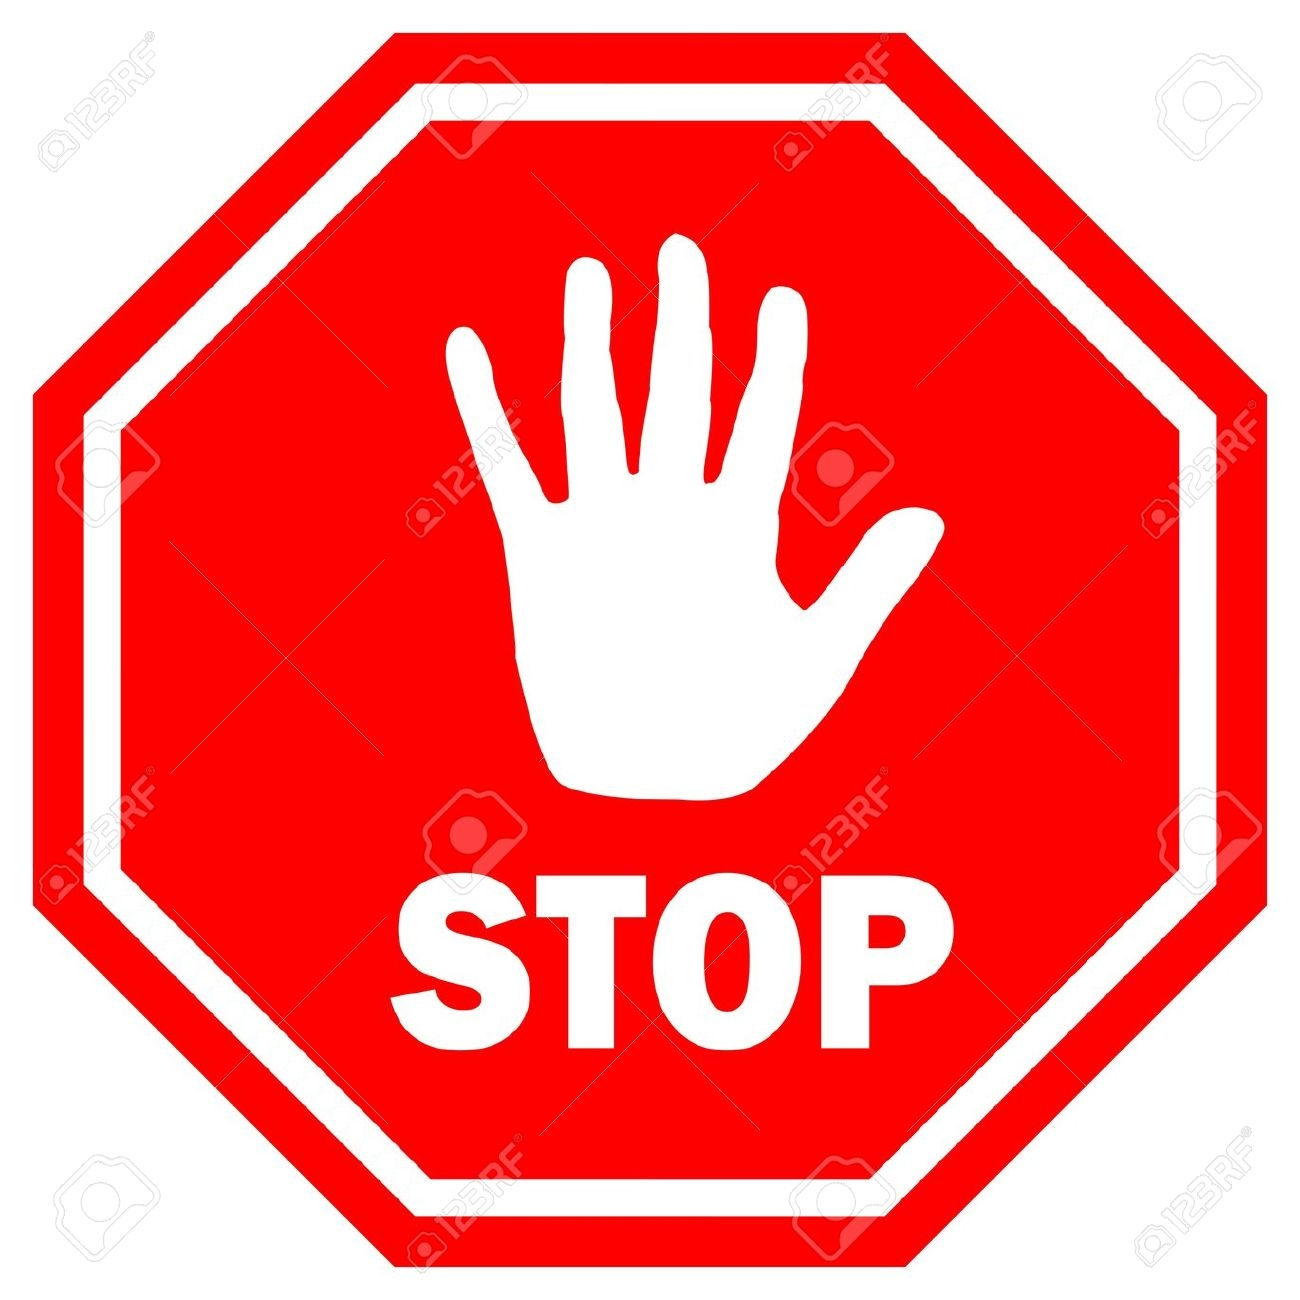 clipart of stop sign #12